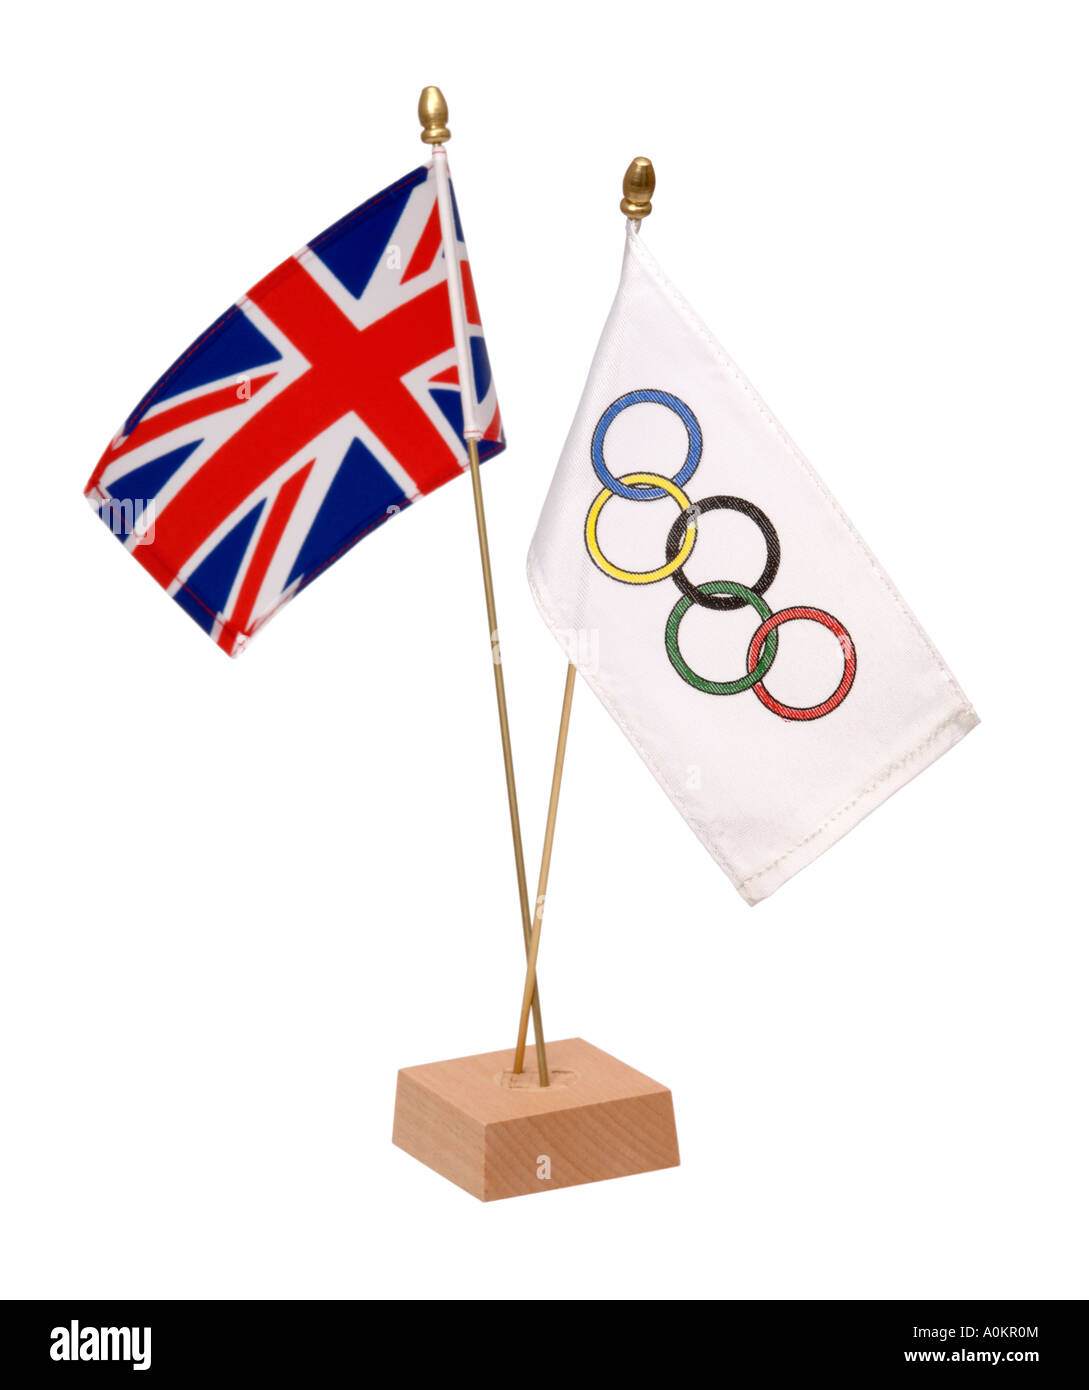 Union jack and olympic flag - Stock Image